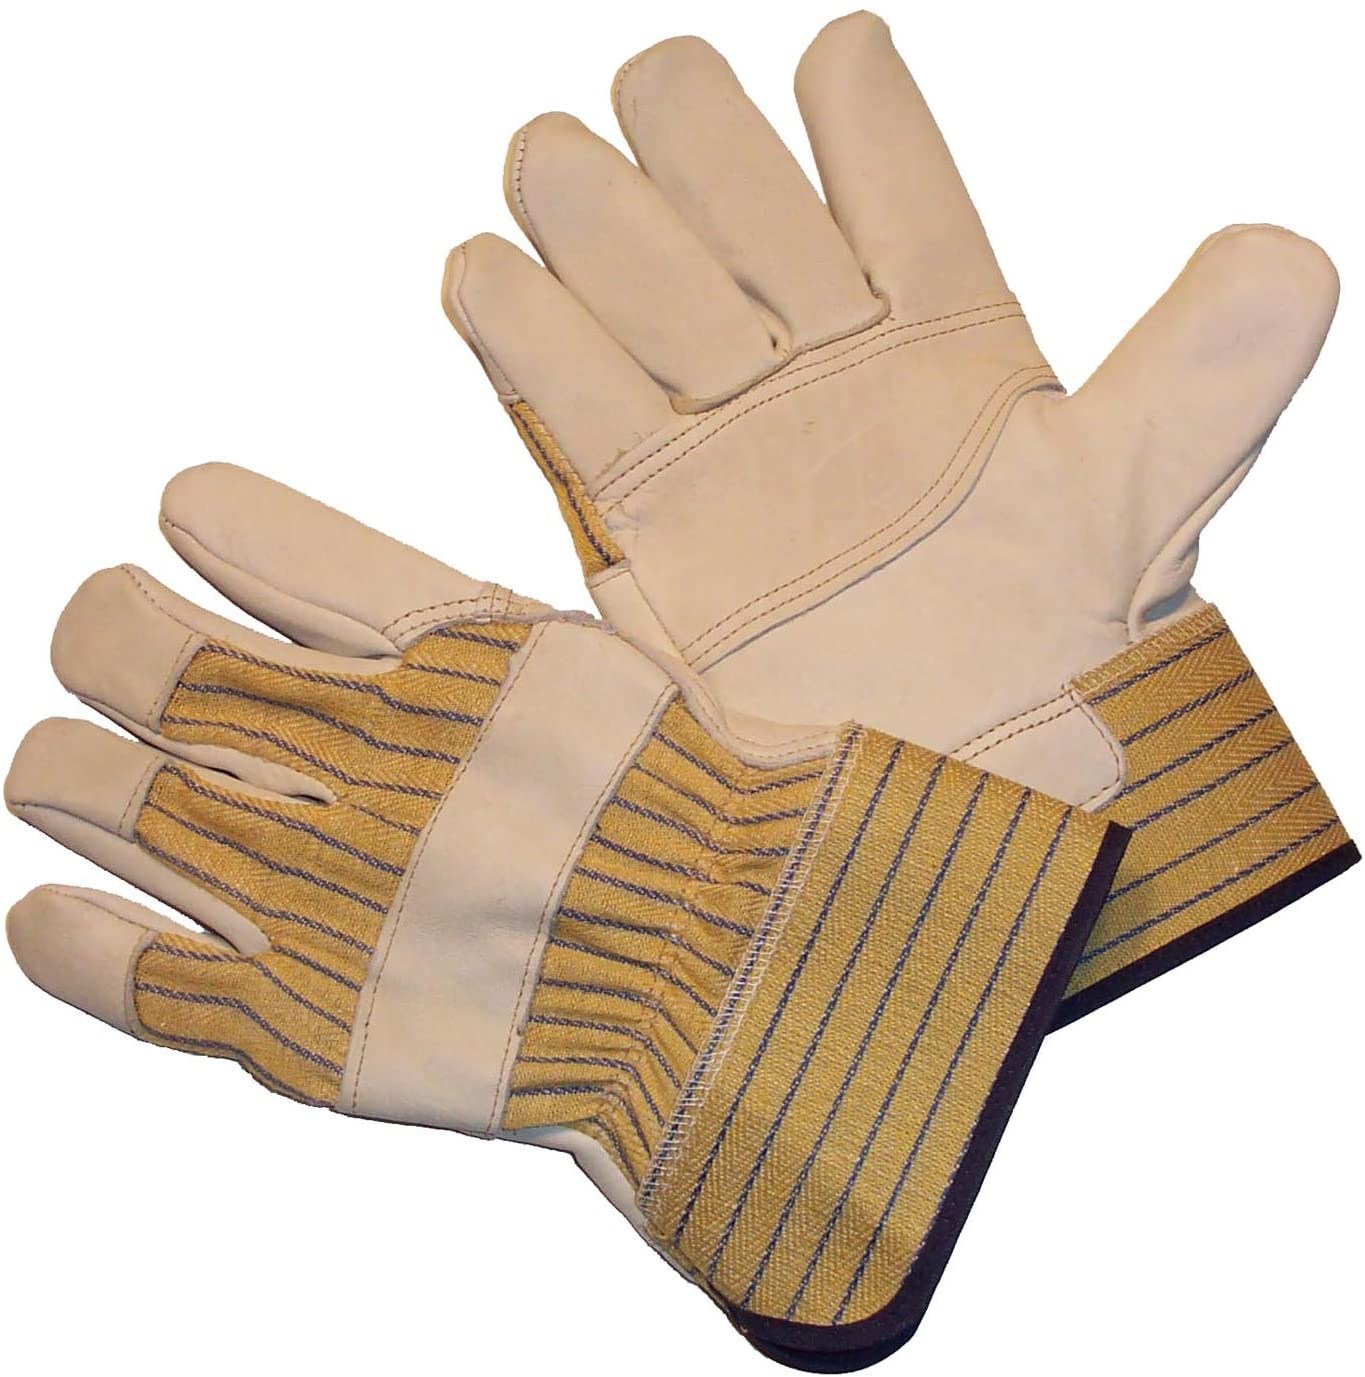 G & F 6431L-3 Premium Cowhide Leather Work Gloves, Drivers Gloves, with Double Patch Palm & Rubberized Safety Cuff, 3-Pair, Large